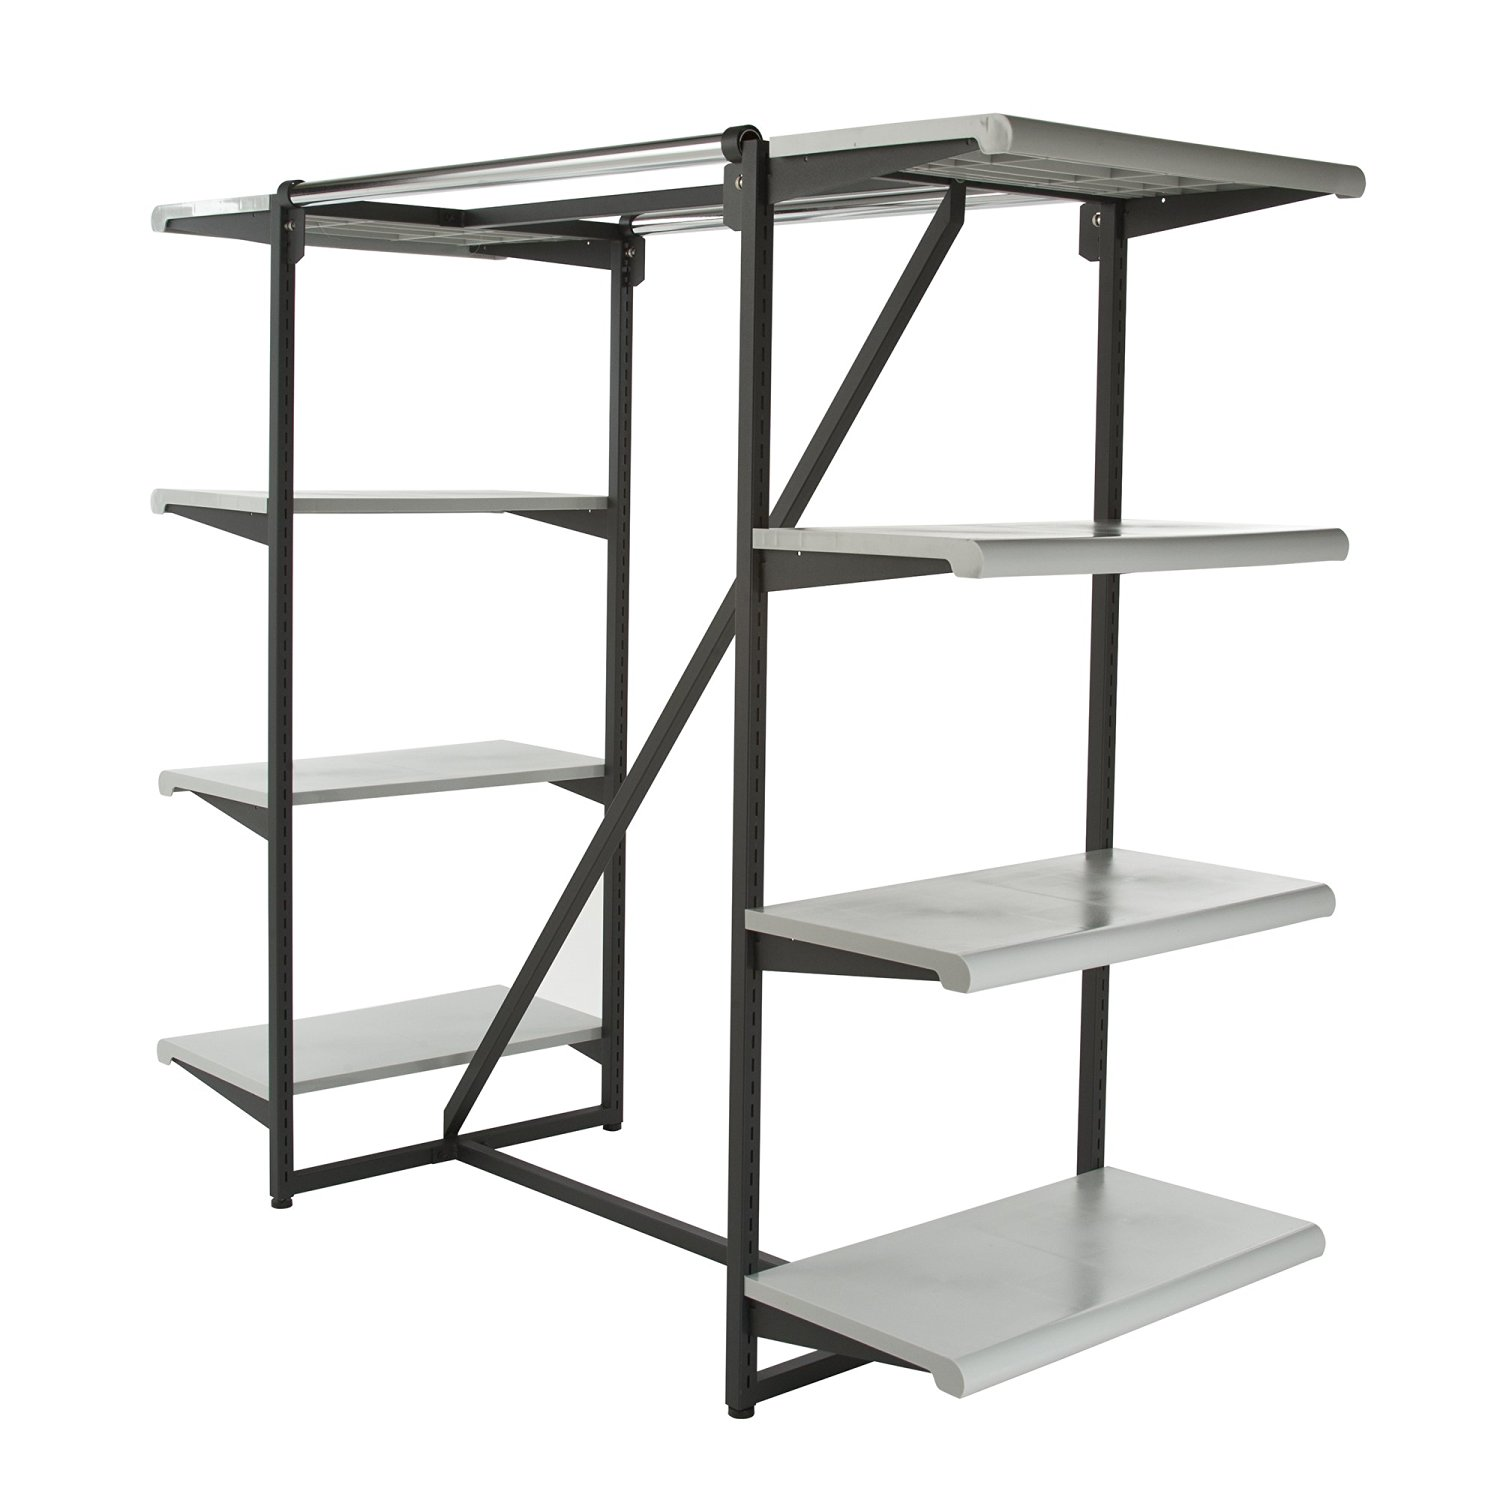 "Econoco K411/GY Double Hangrail Frame with 8-24"" Shelves, 1"" Square Tubing, Matte, Black Frame with Grey Shelves"